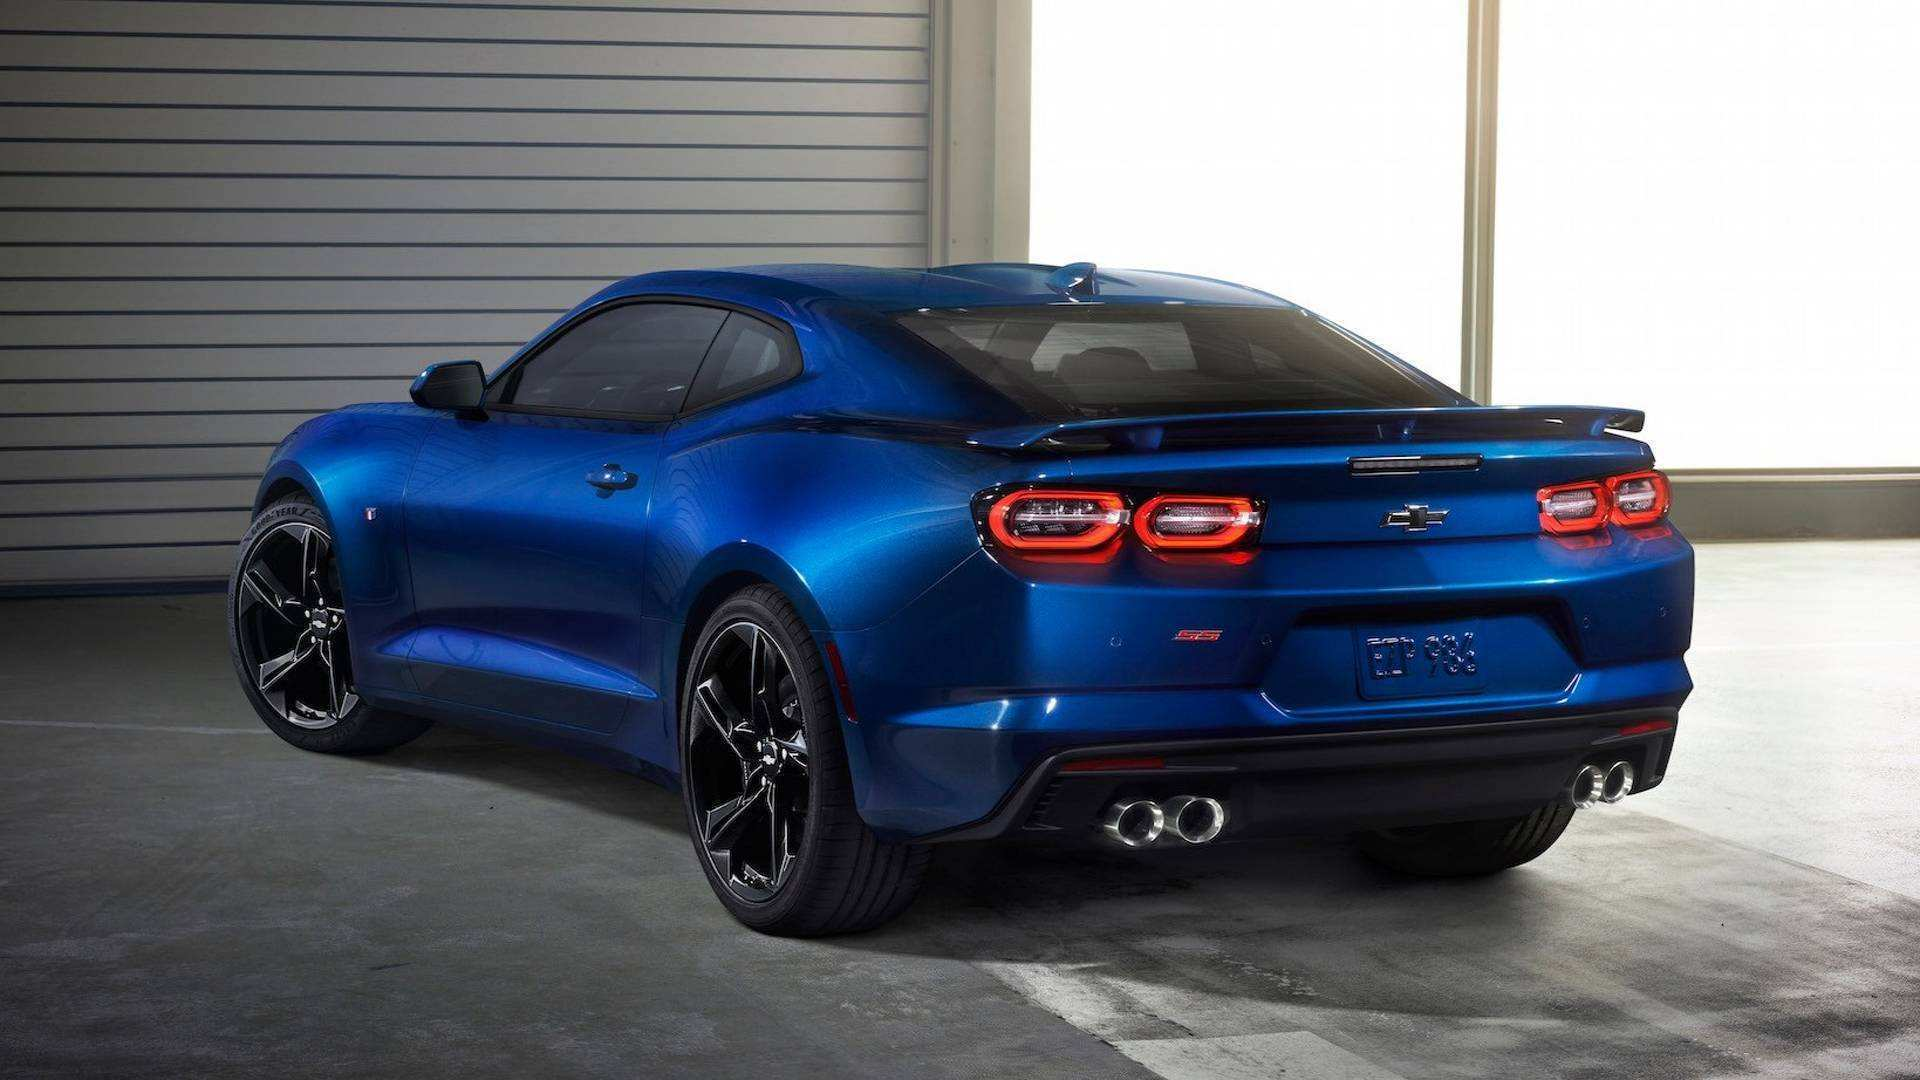 27 Best 2020 Camaro Z28 Horsepower Model